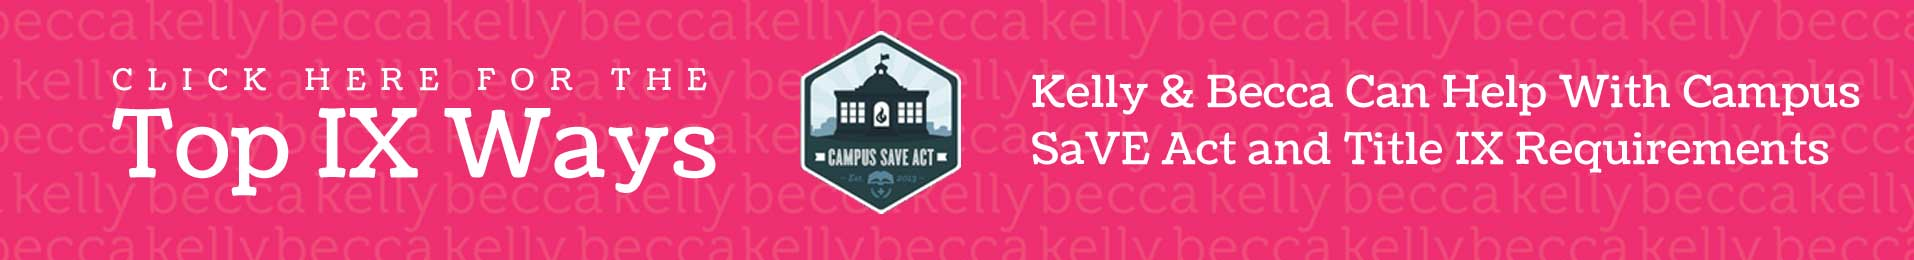 Top IX Ways Kelly & Becca Can Help With Campus SaVE Act and Title IX Requirements